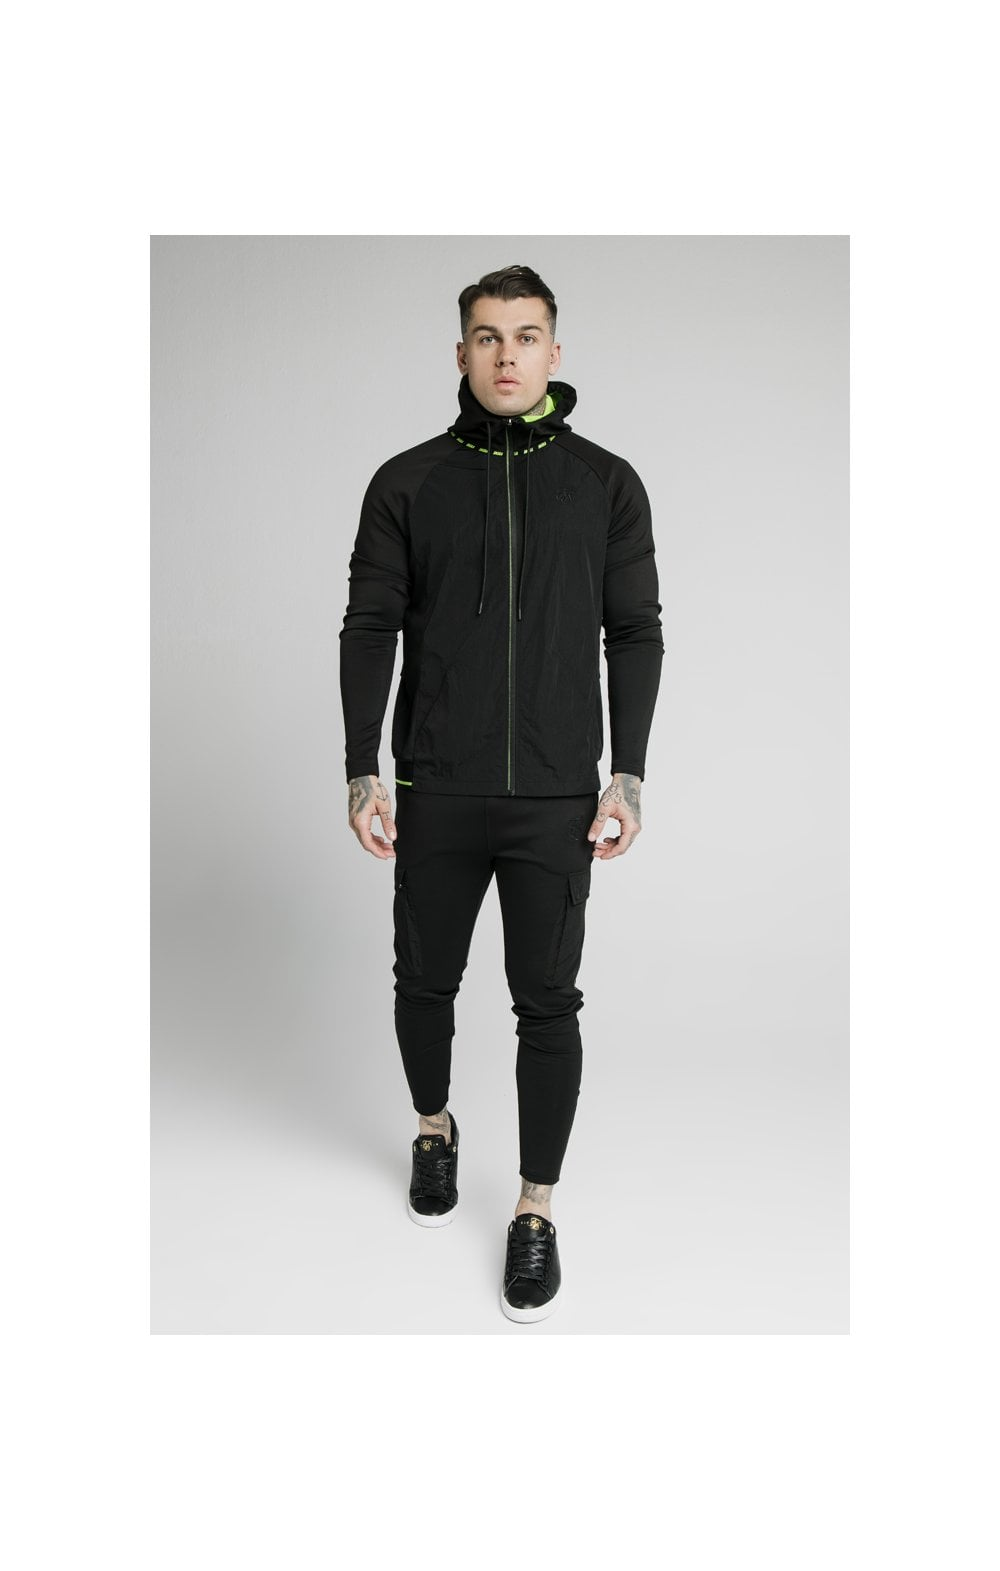 Load image into Gallery viewer, SikSilk Adapt Crushed Nylon Zip Through – Black (2)